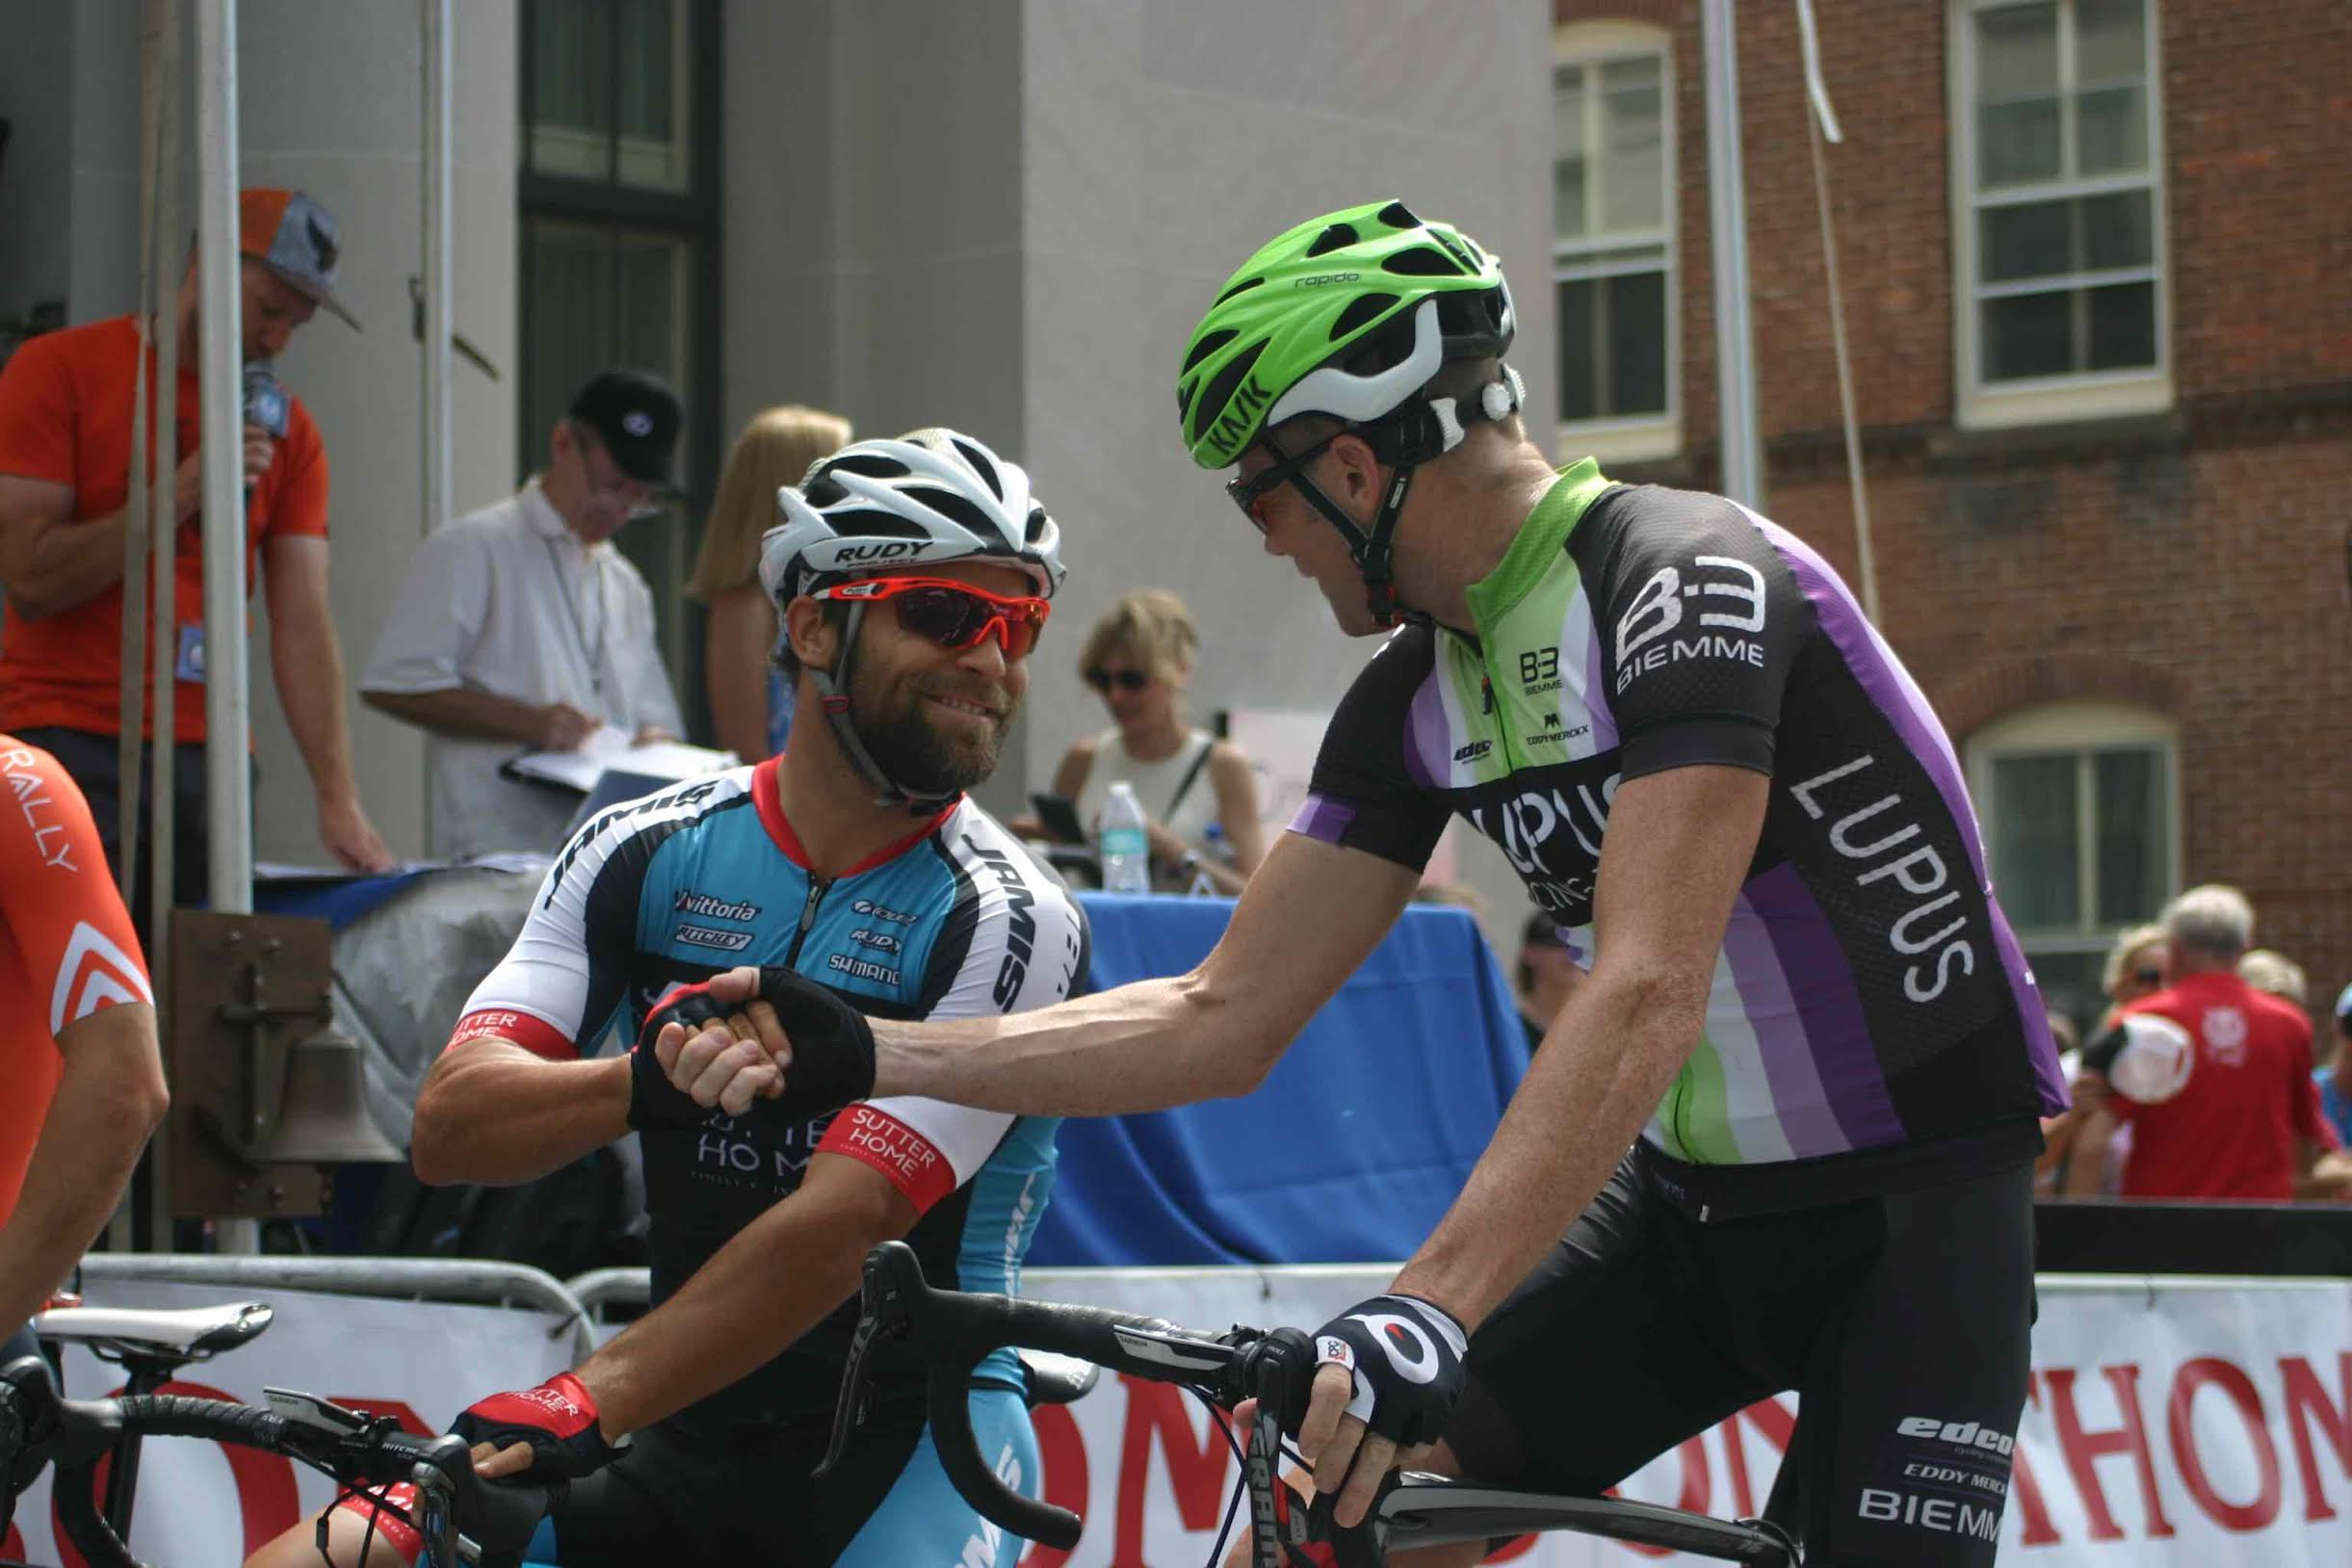 Last year's American Criterium Champion and last year's Bucks County Classic winner Eric Marcotte (left) and former WorldTour rider Chris Horner (right) share a handshake during the call-ups. Photo courtesy Chuck Rudy.